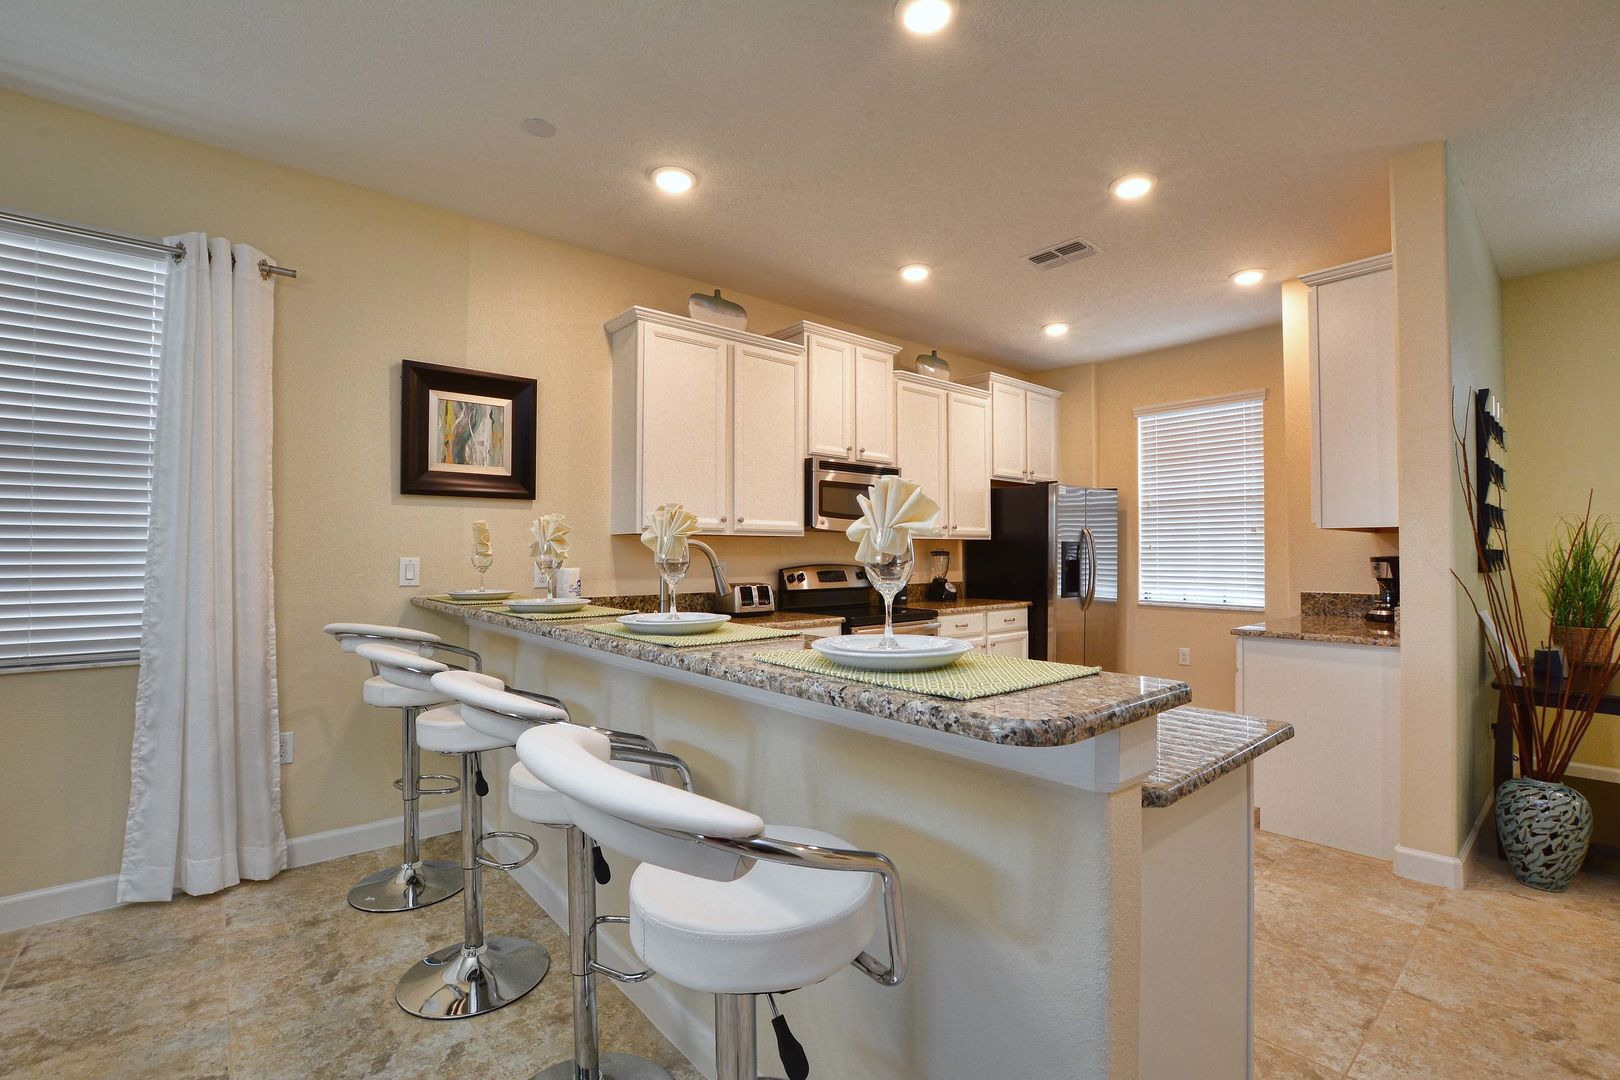 Vacation Homes in Kissimmee